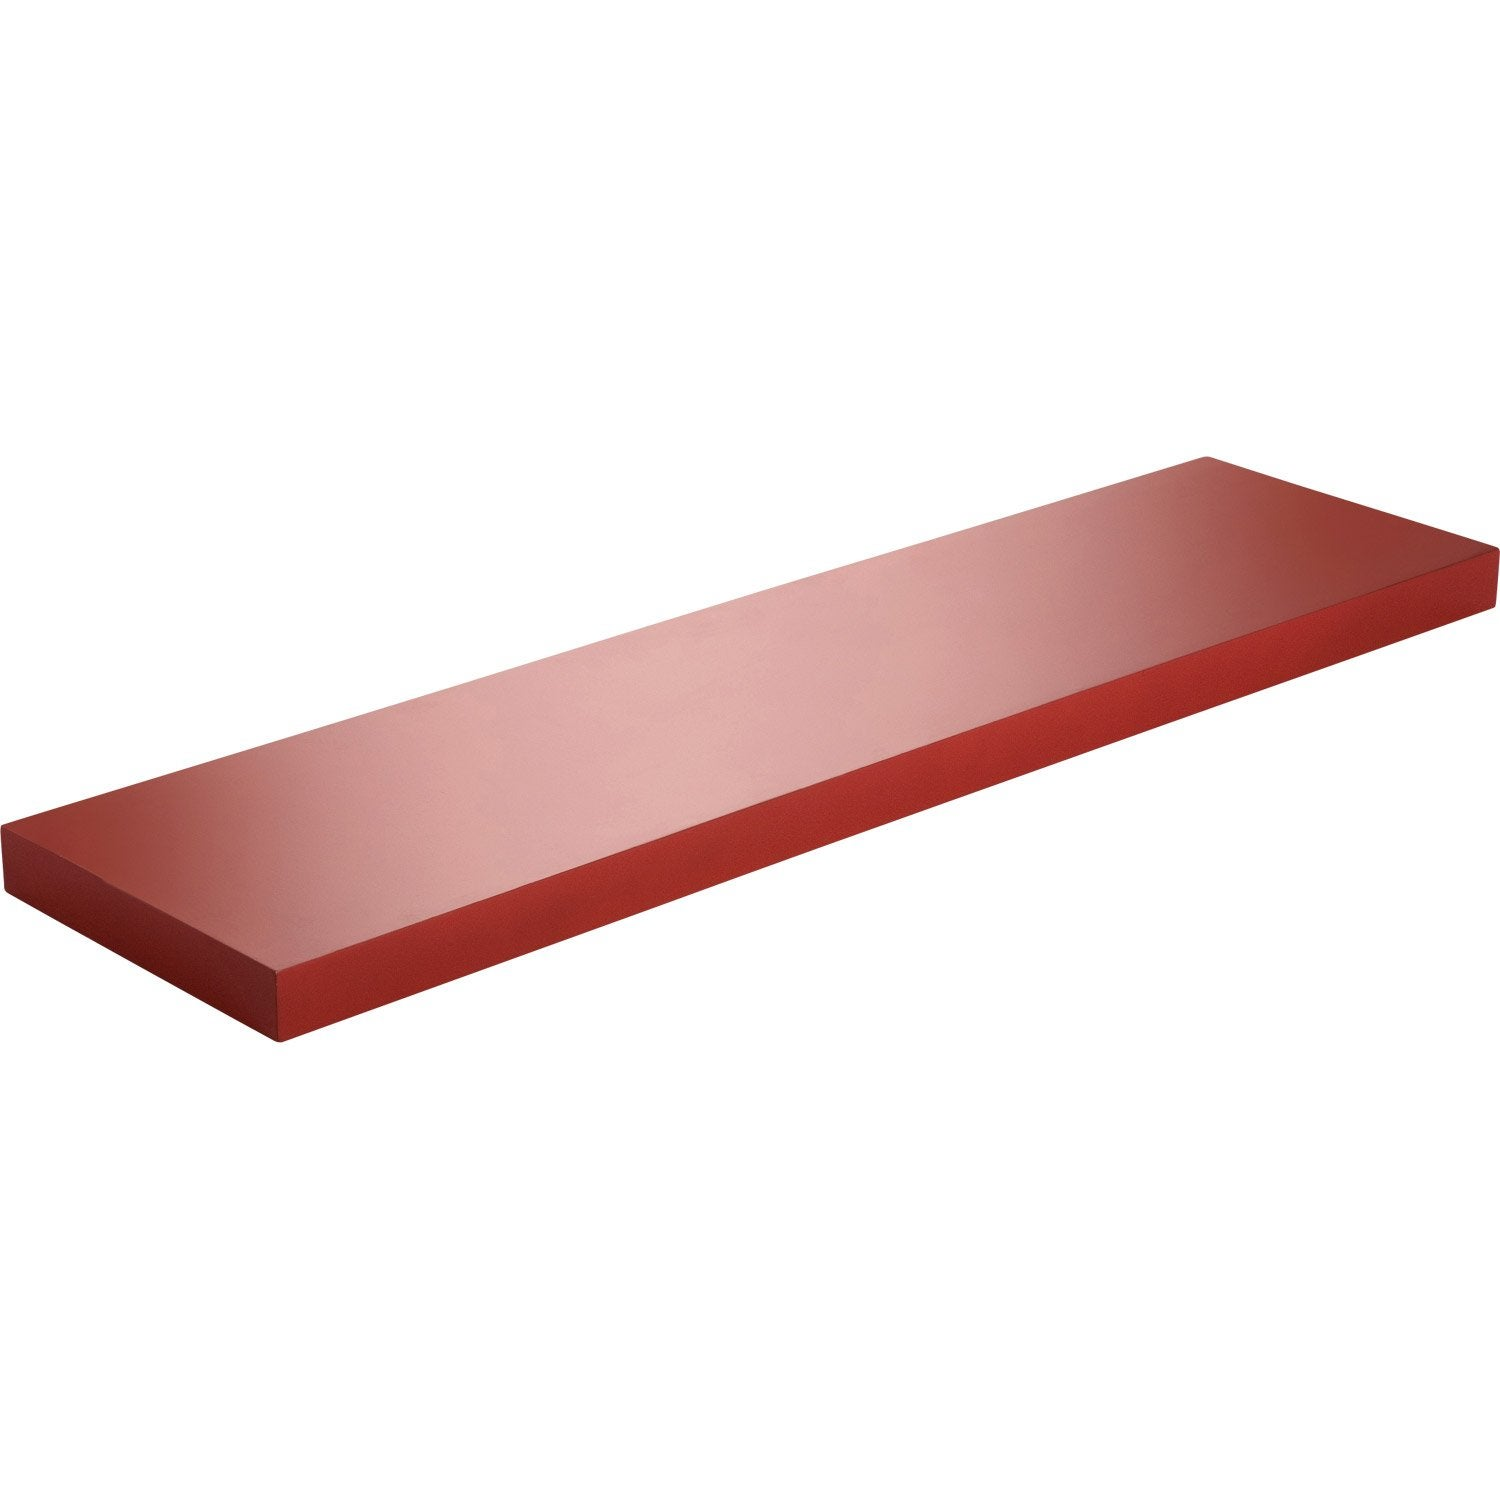 Etag re murale spaceo color rouge rouge n 3 l 90 x p 23 5 cm p 38mm leroy merlin - Etagere murale rouge ...